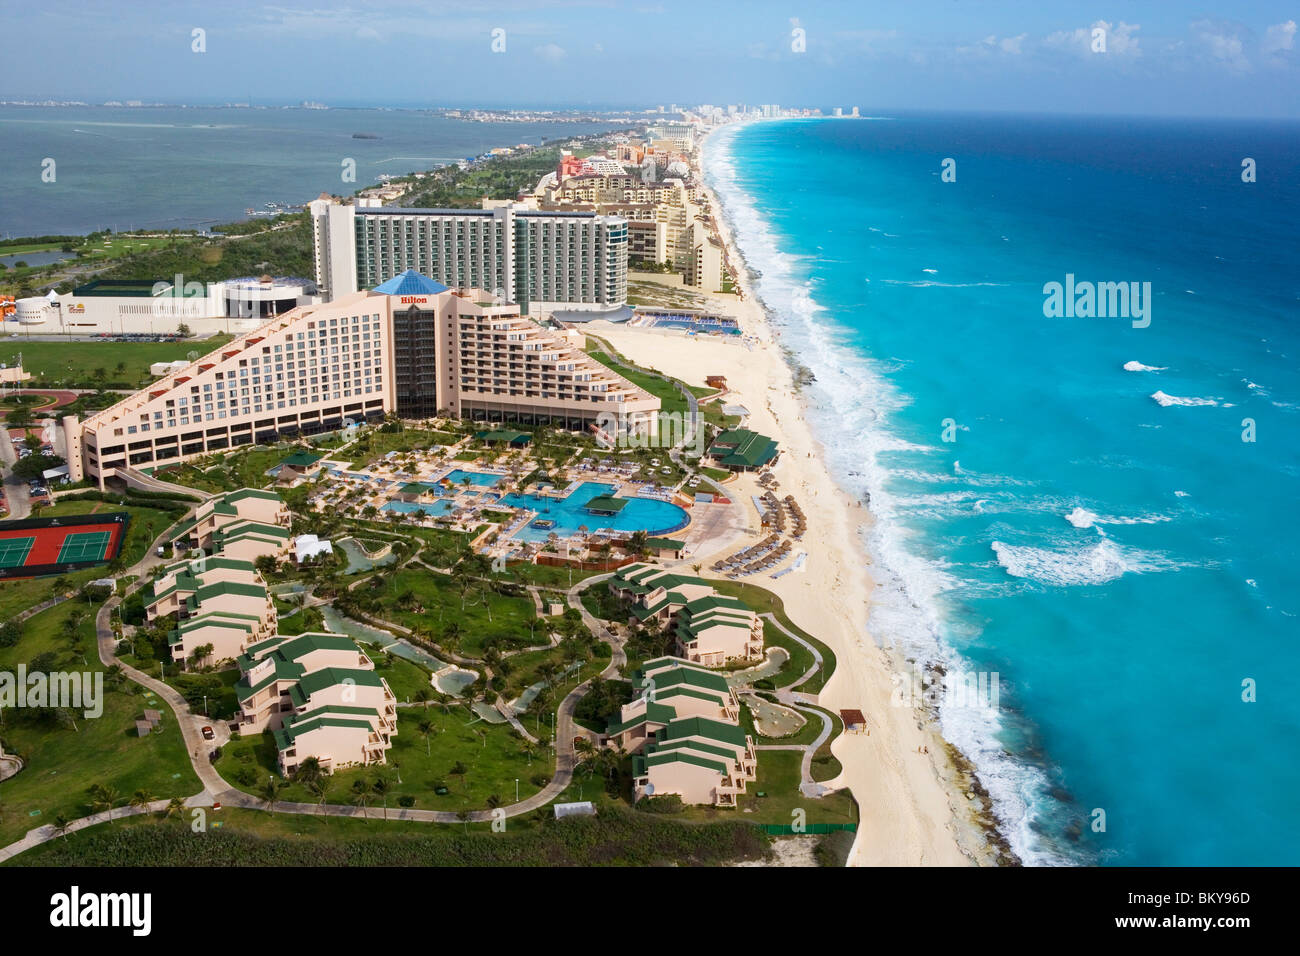 Aerial of the Hilton Cancun Spa Resort in the Zona Hotelera, Cancun, State of Quintana Roo, Peninsula Yucatan, Mexico - Stock Image